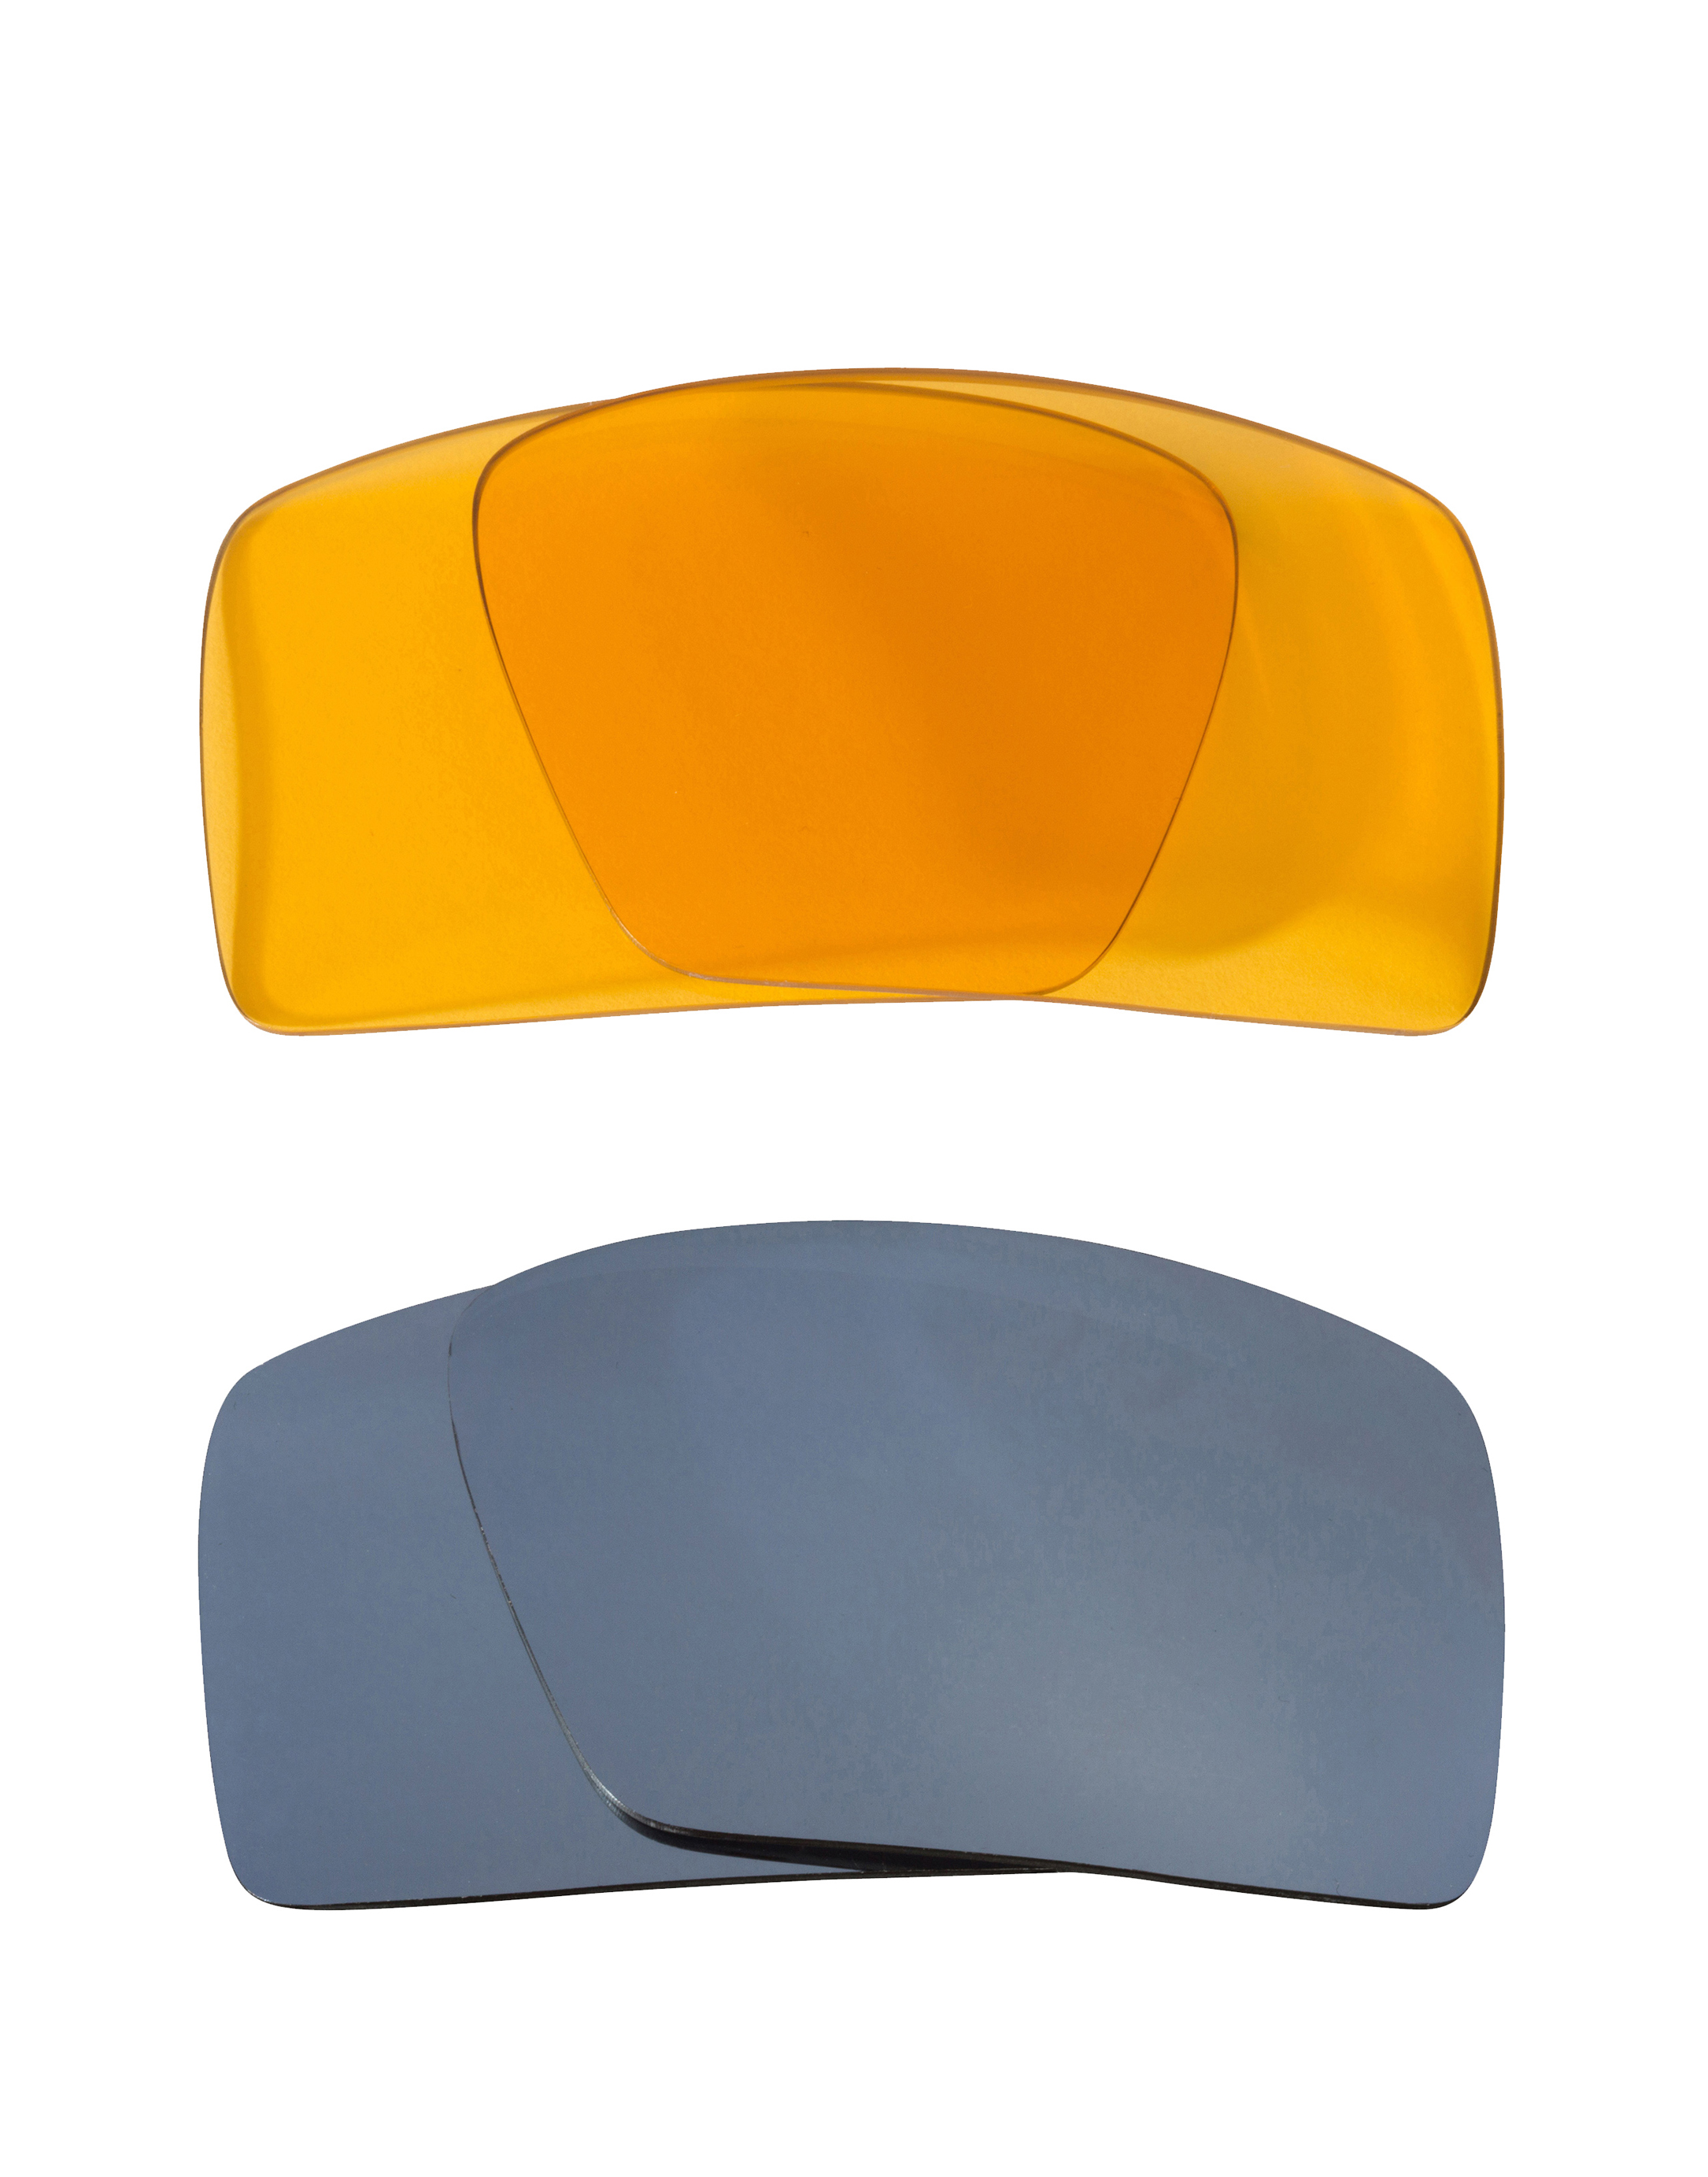 0c55c74178 Details about Eyepatch 2 Replacement Lenses Hi Intensity Yellow   Silver by SEEK  fits OAKLEY